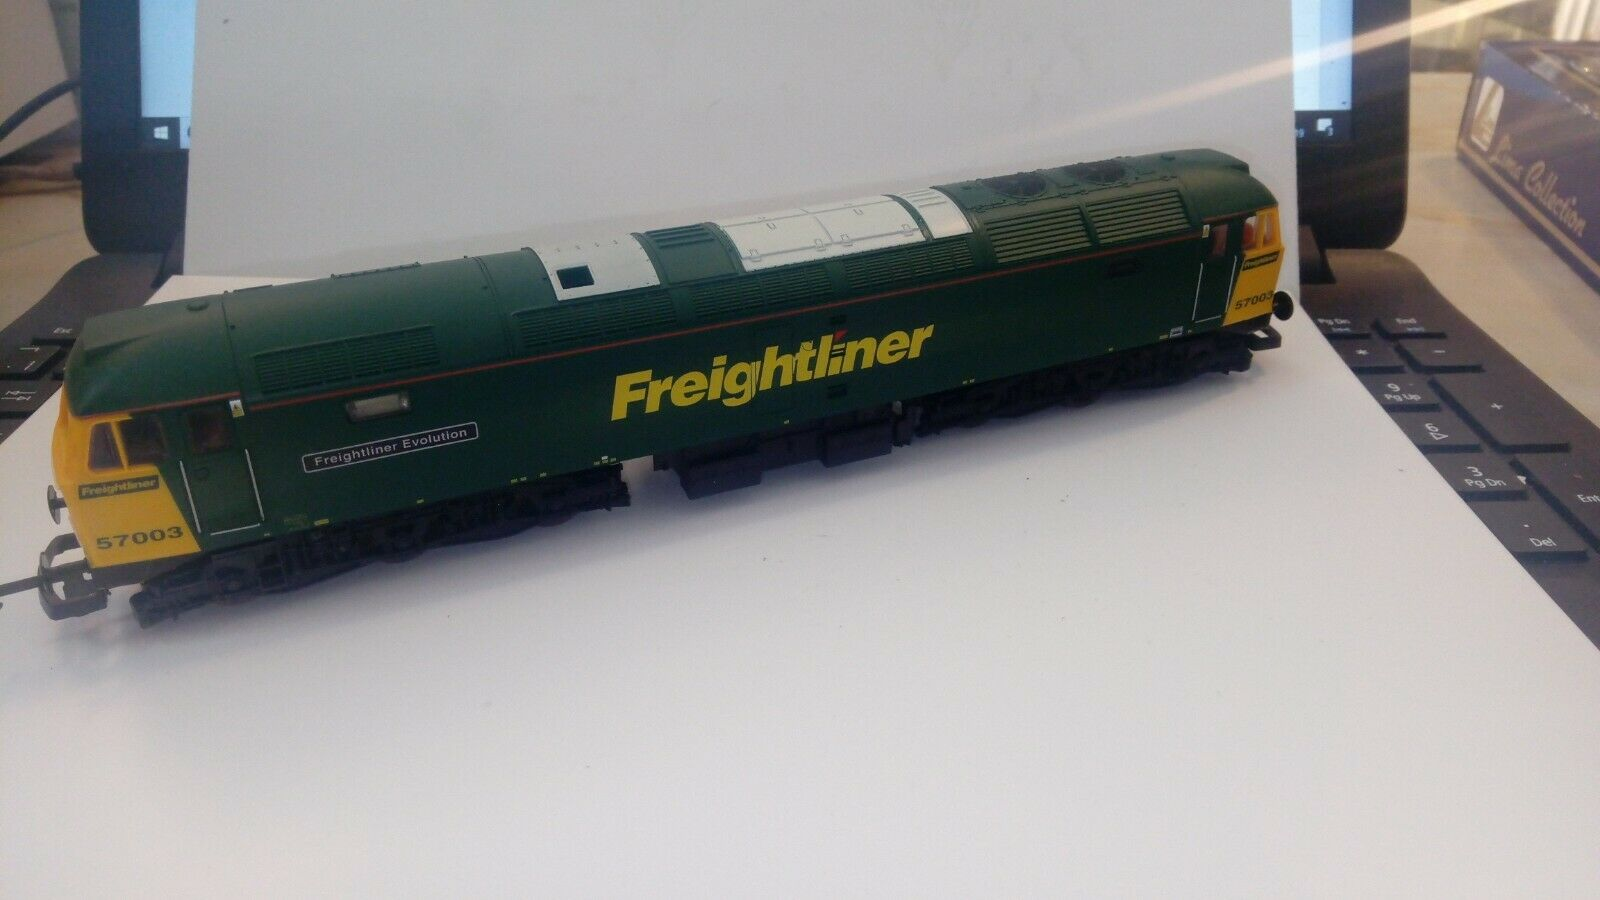 LIMA 204689  classe 57 003 'FREIGHTLINER EVOLUTION' VERY GOOD CONDITION